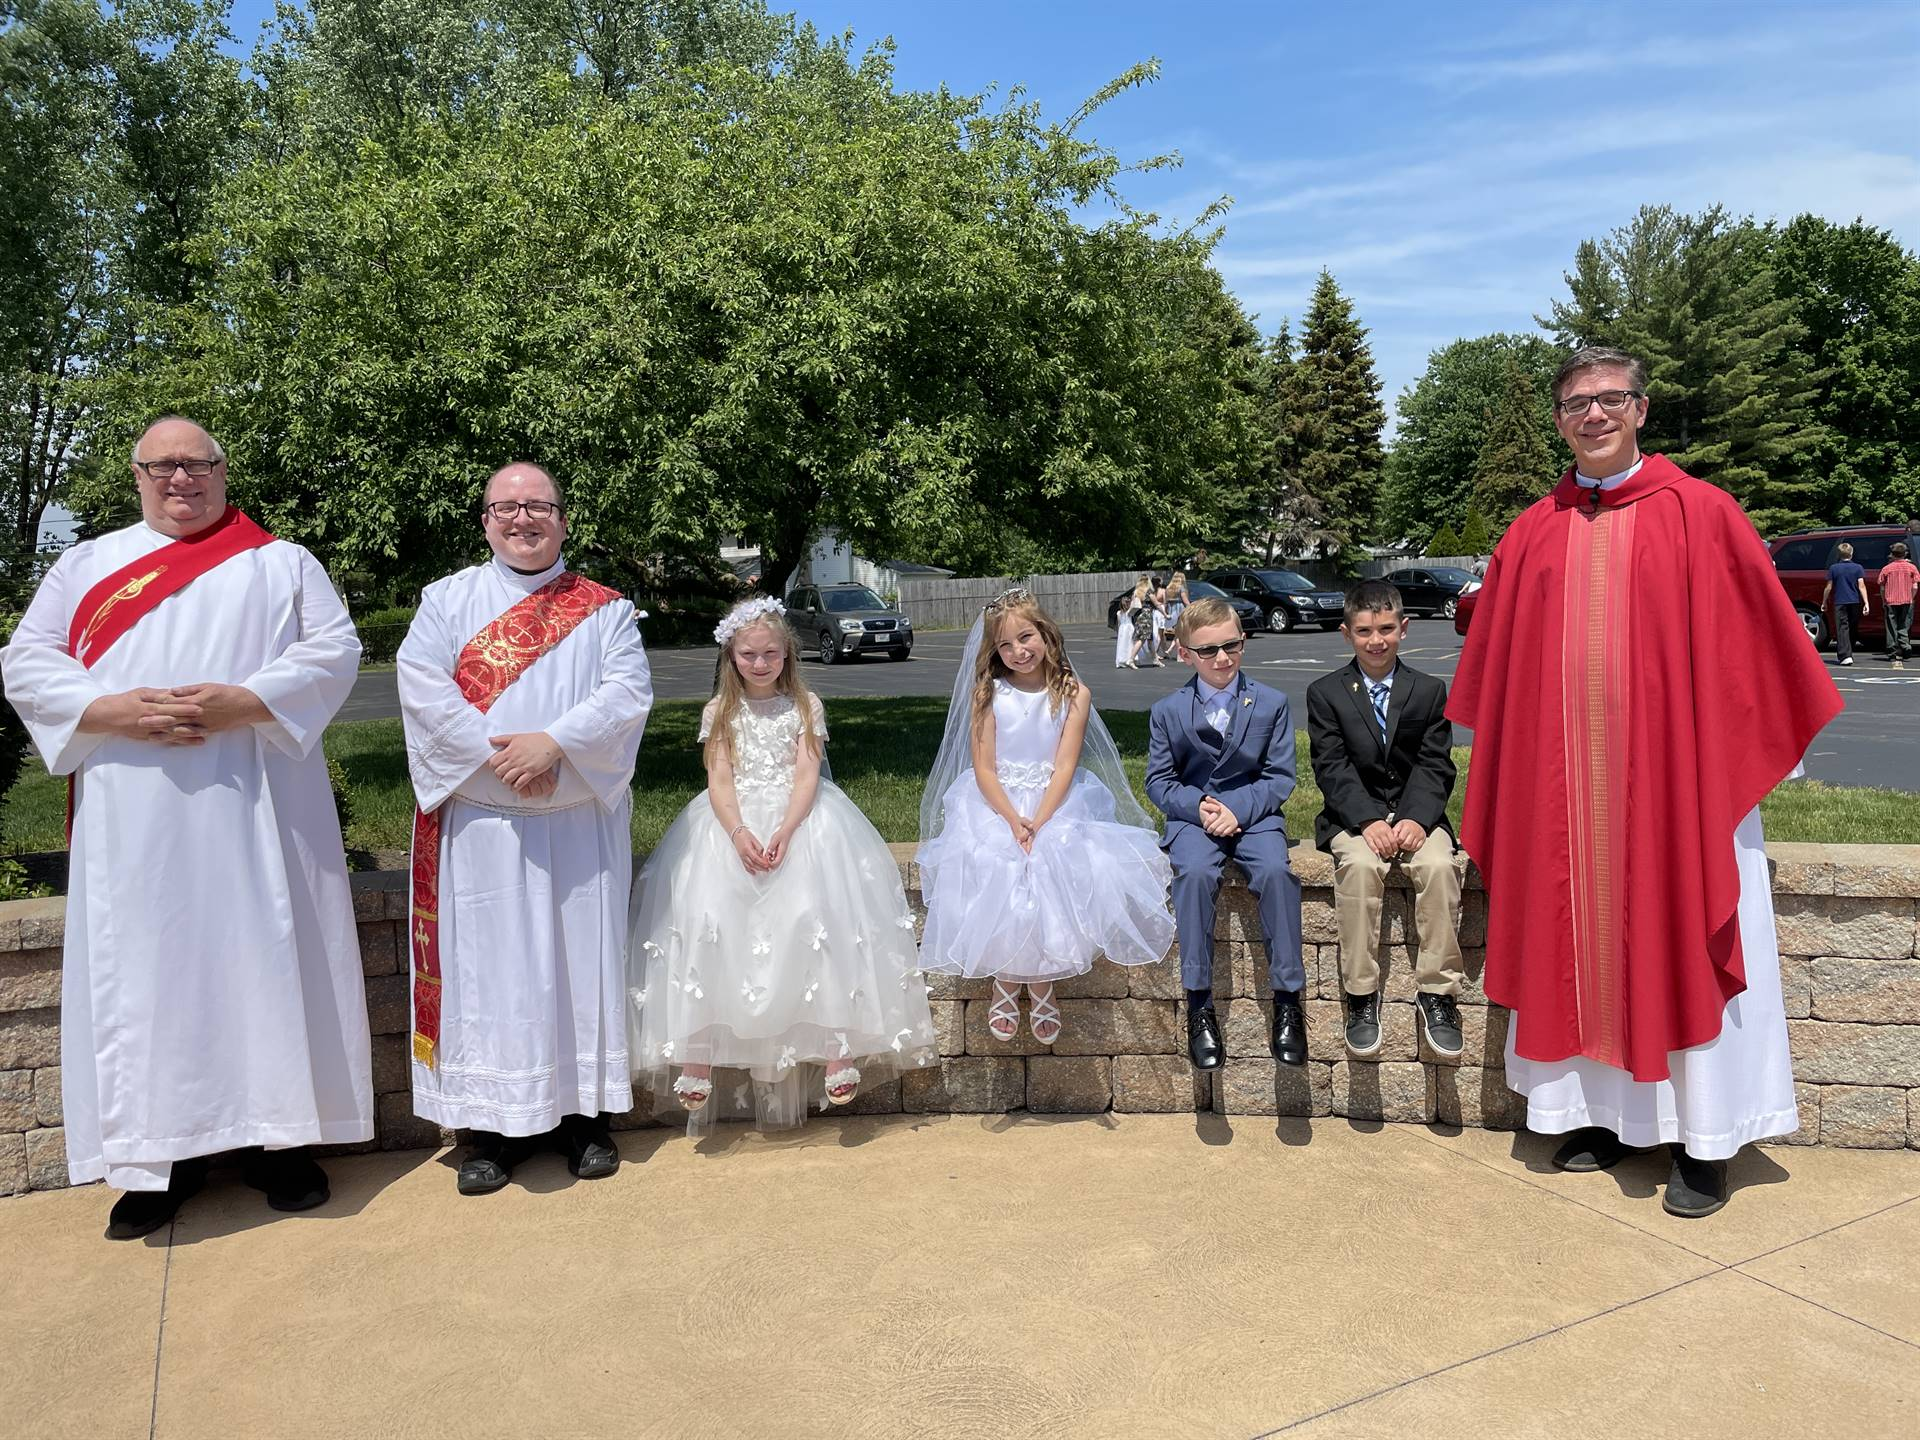 pastor and deacons pose for a photo with the communicants